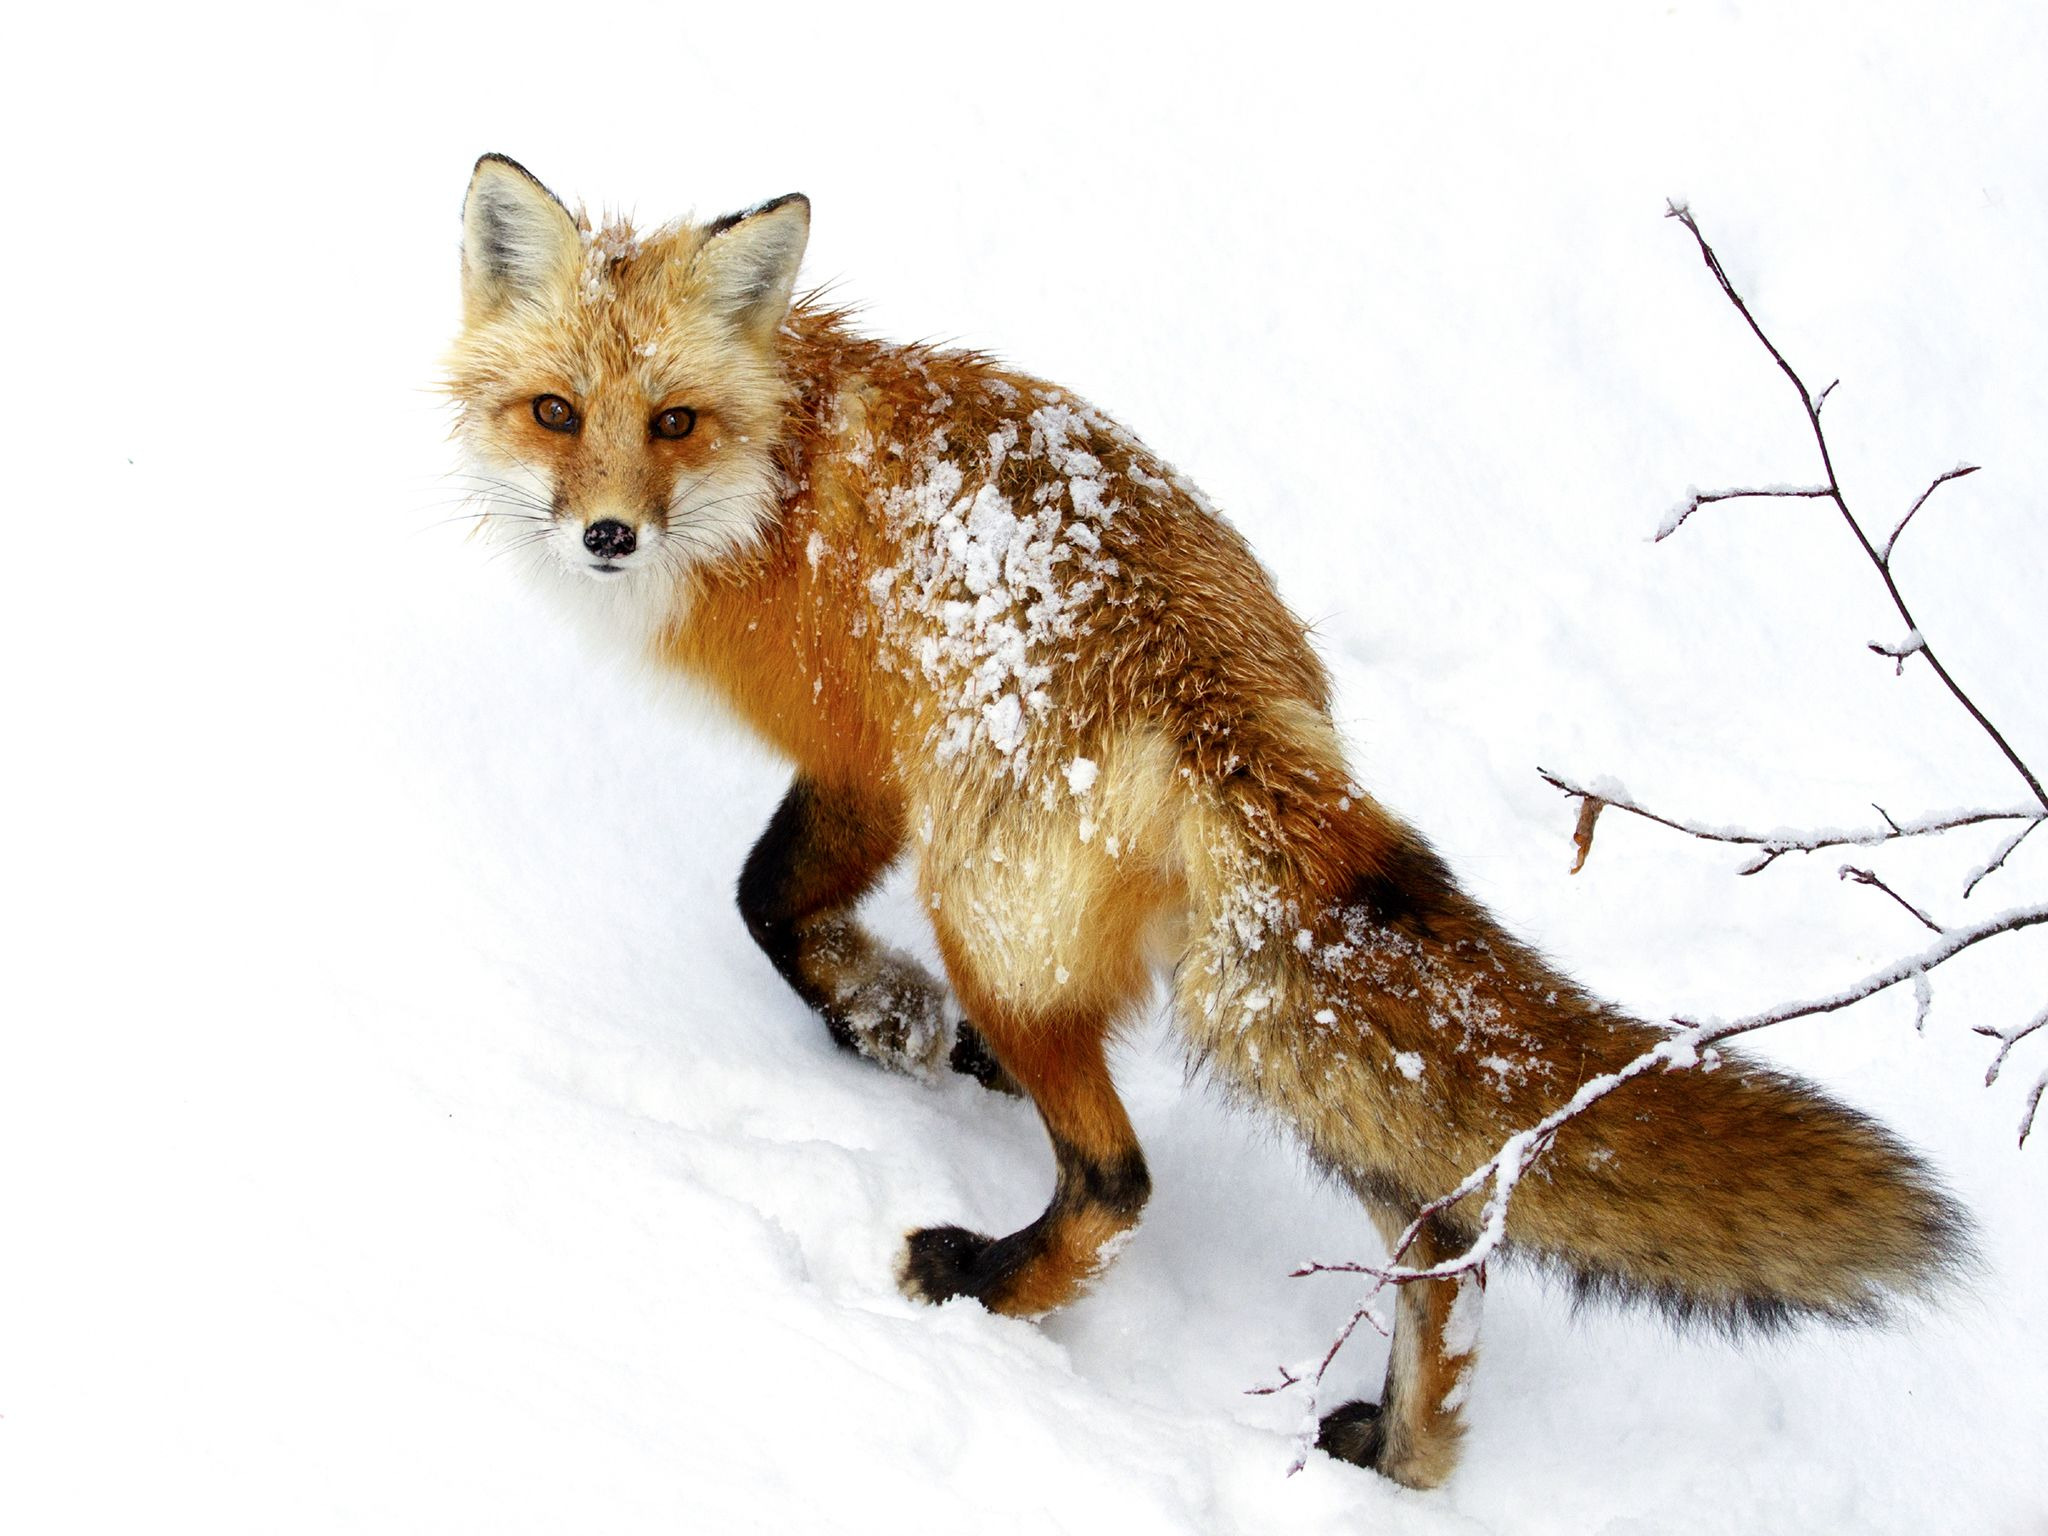 A Red fox in snow. This image is from Winter Wonderland. [Photo of the day - دسامبر 2015]